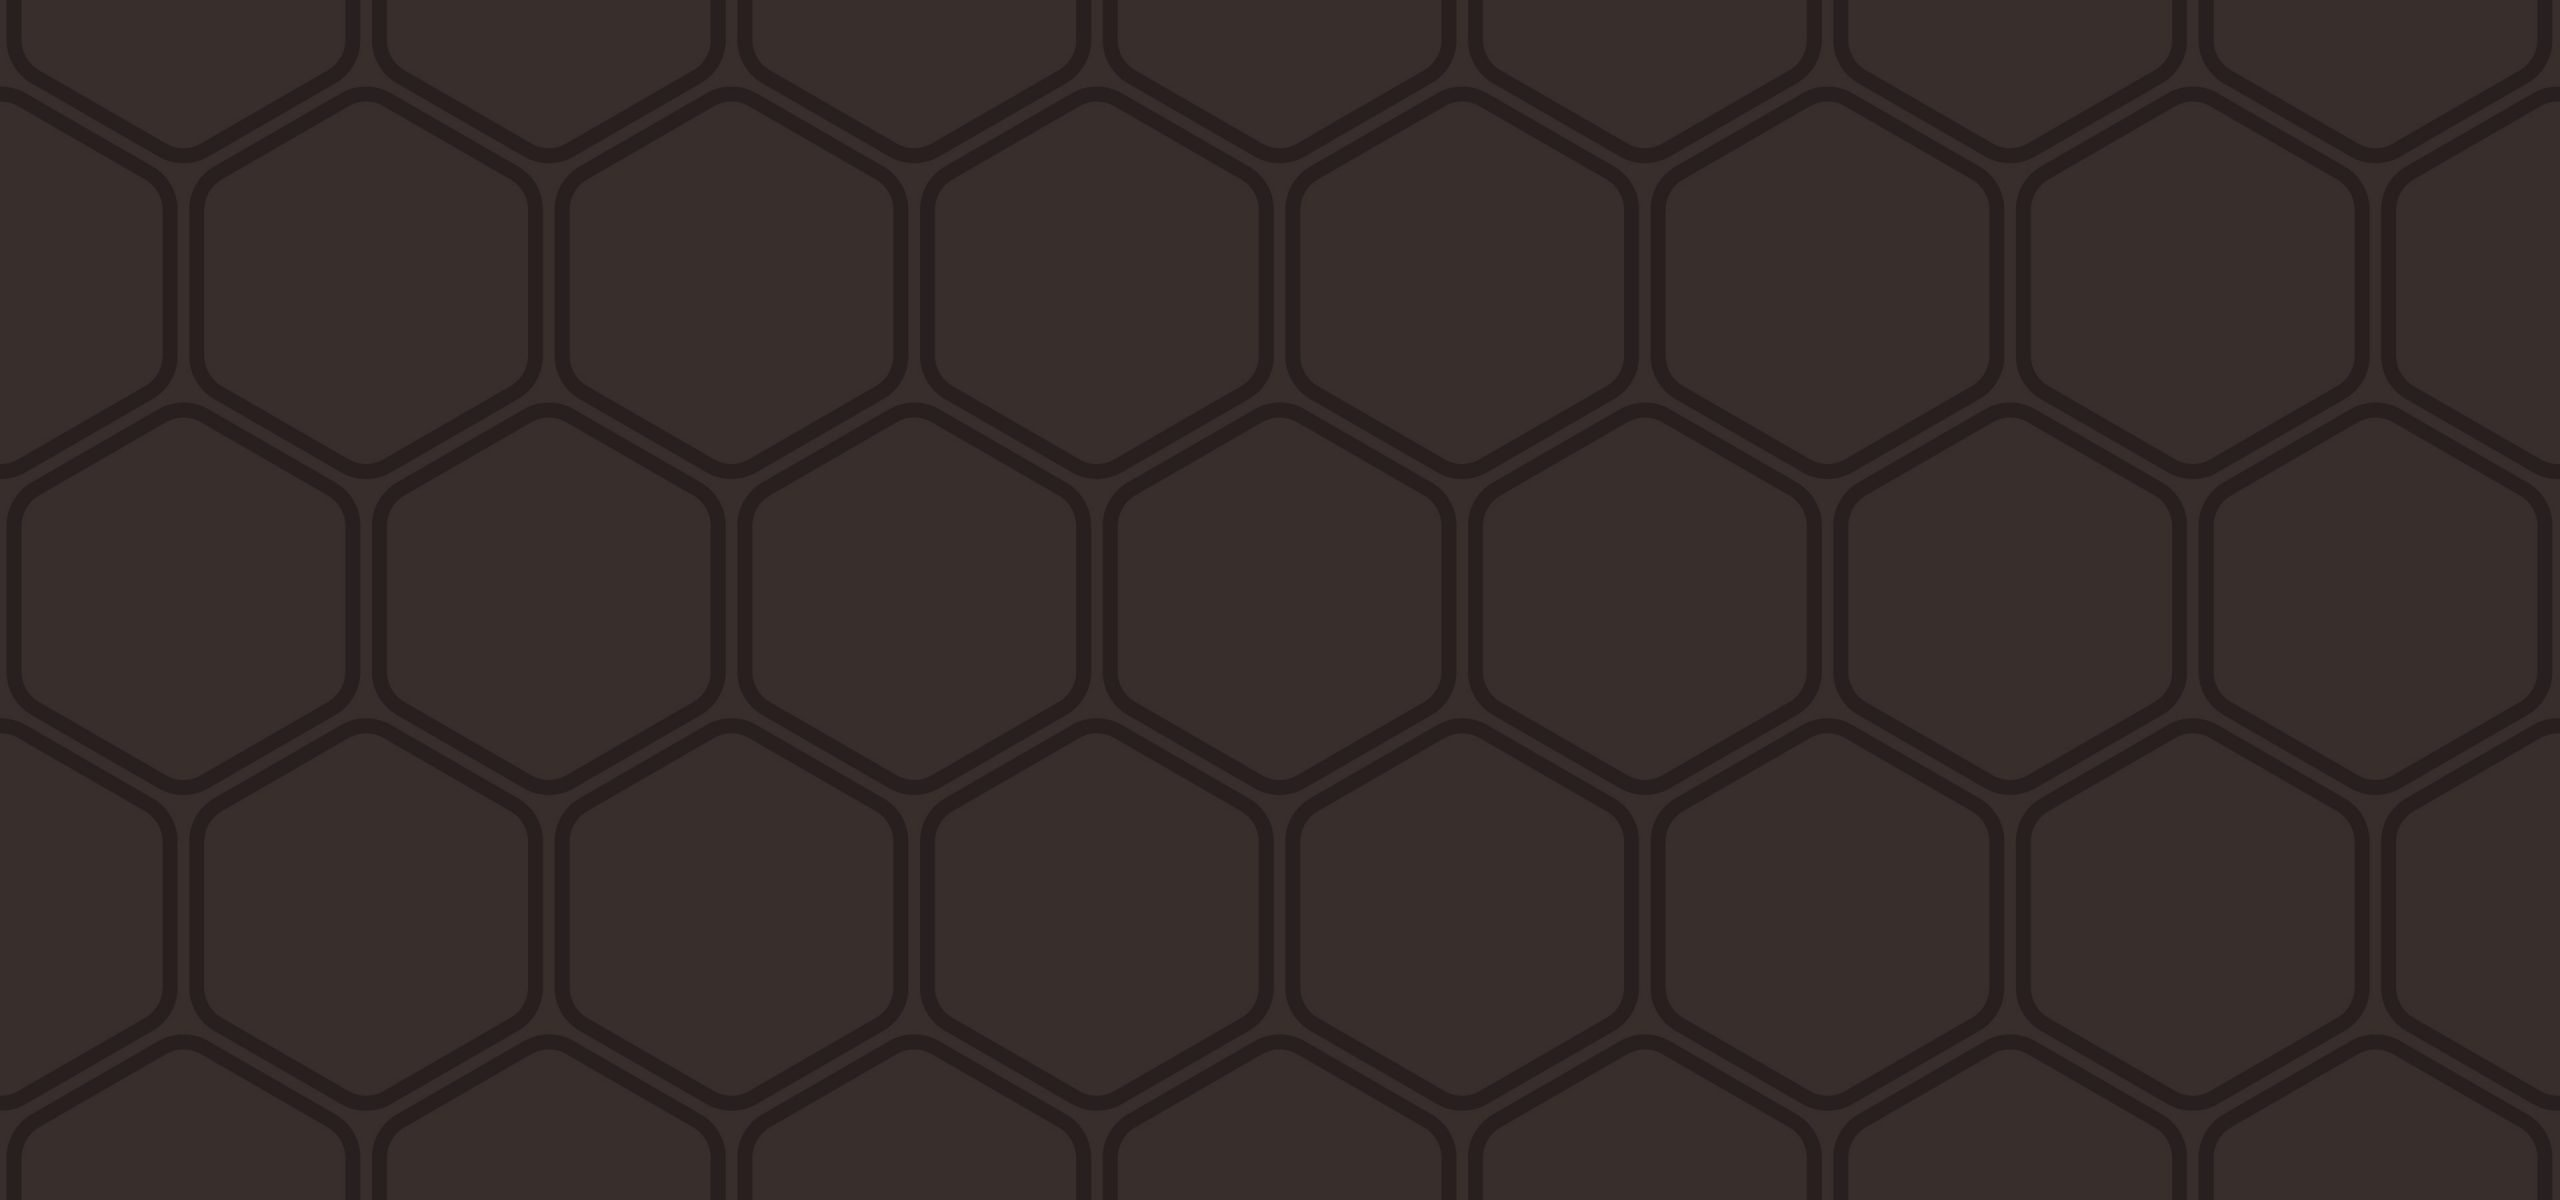 Honeycomb background for BEE logo design